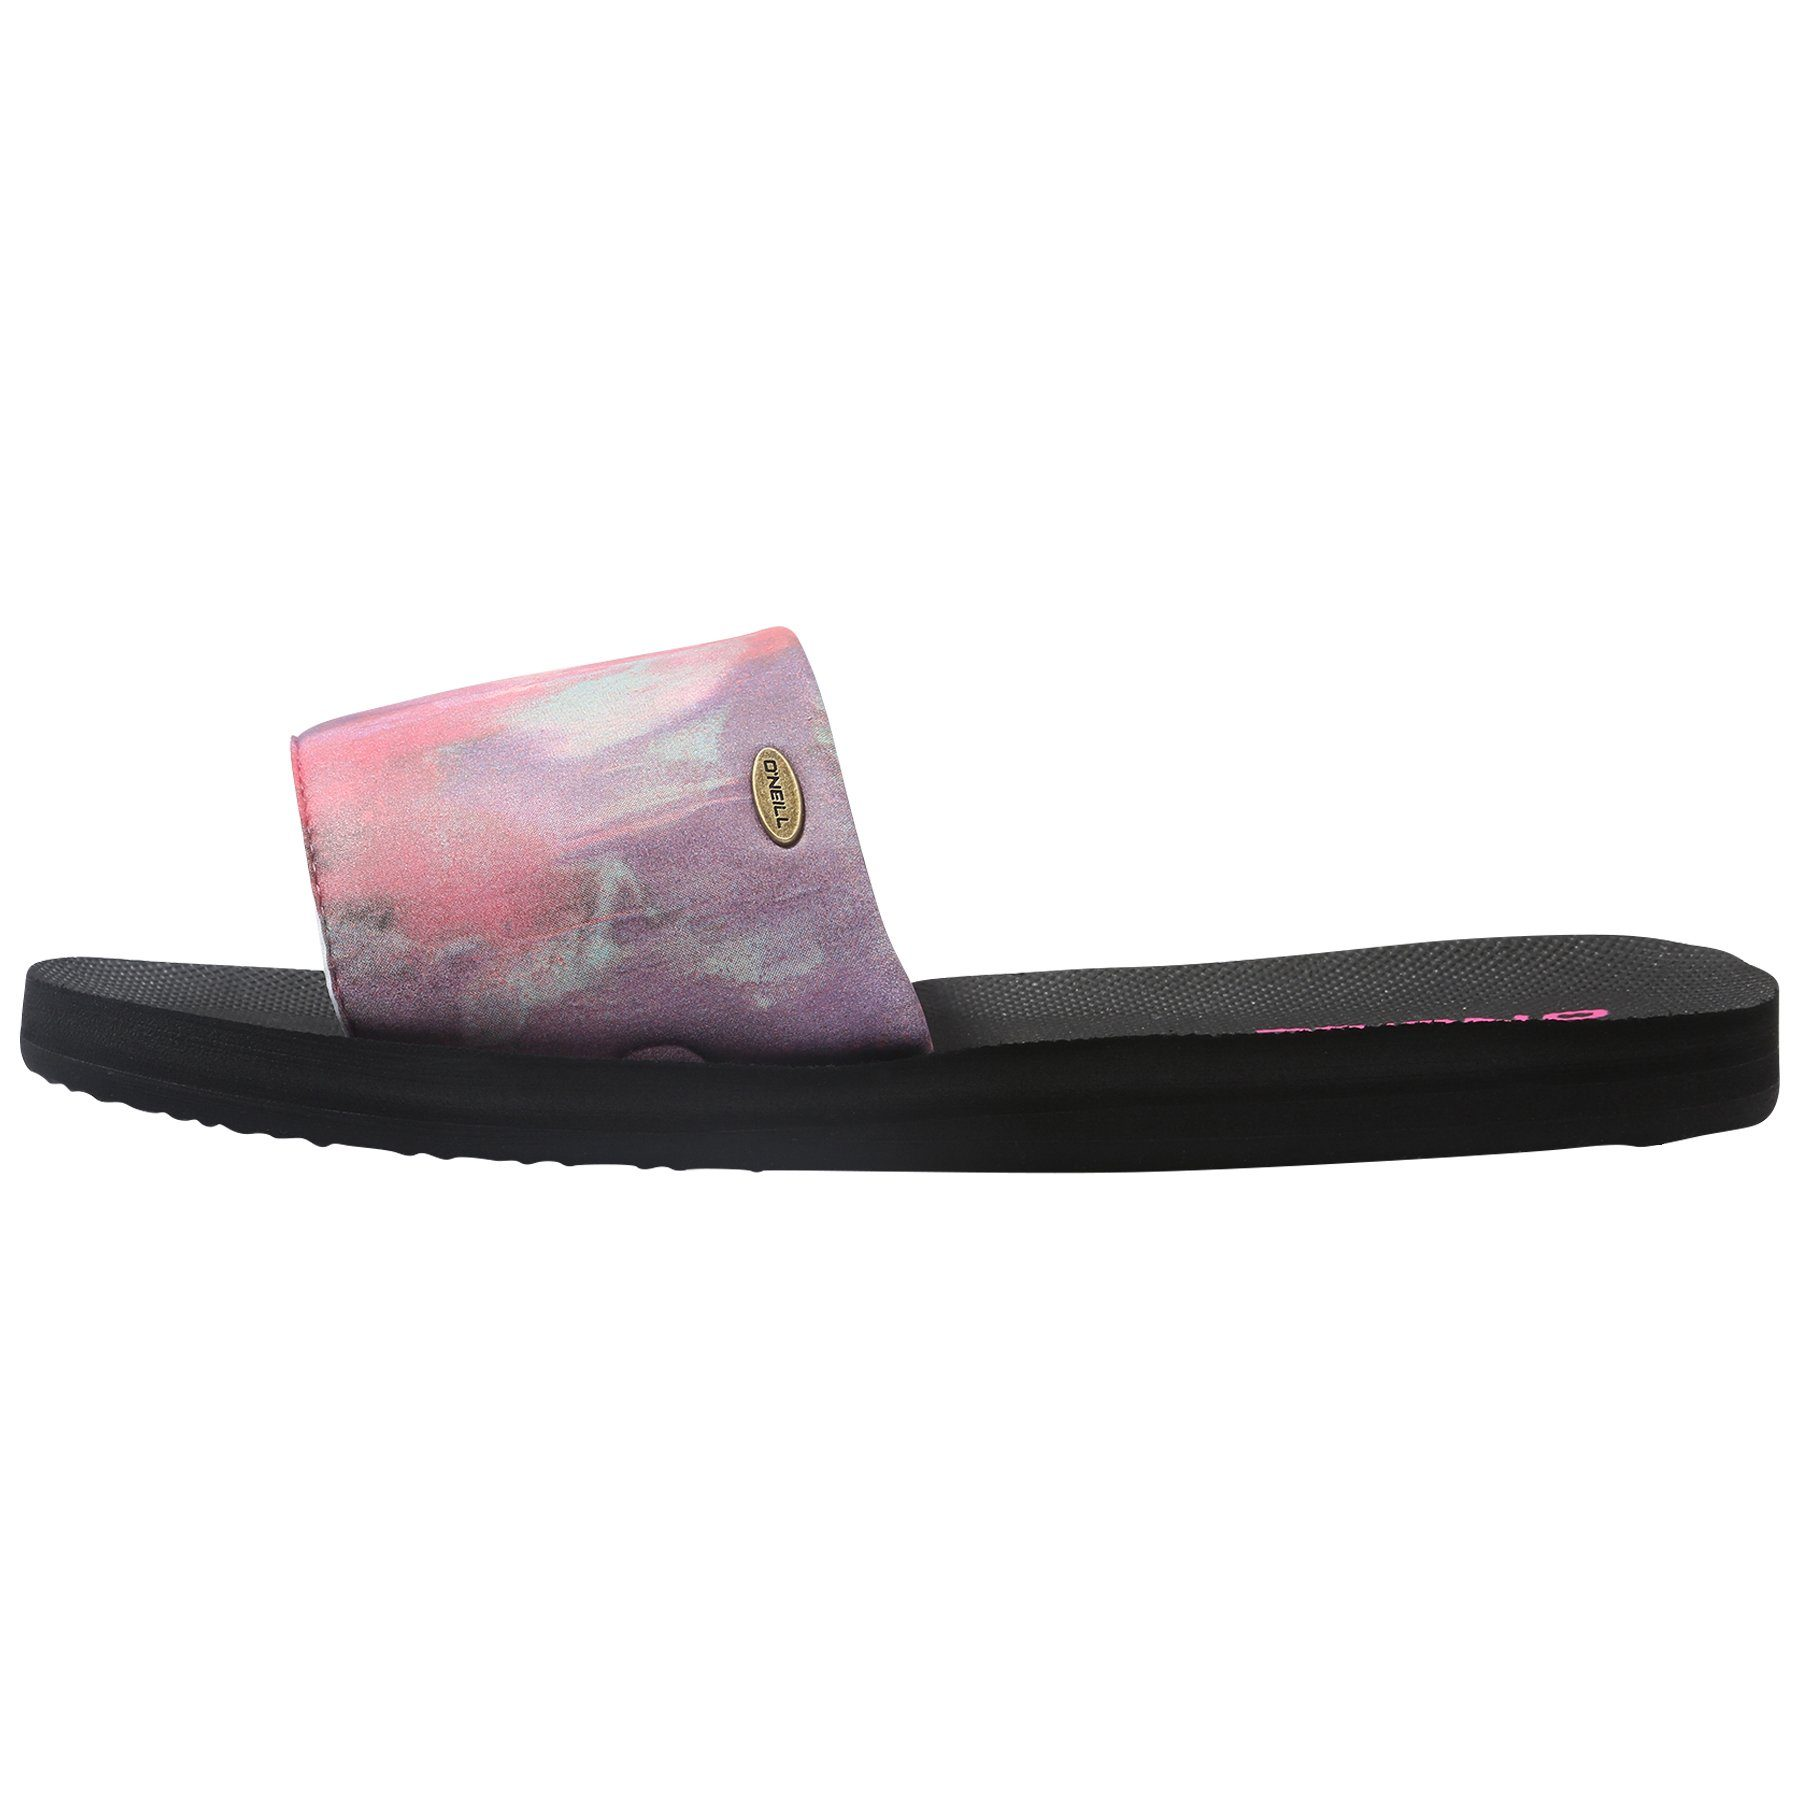 O'Neill Sandalen Pool slide online kaufen  PINK AOP W#ft5_slash# BLUE 6